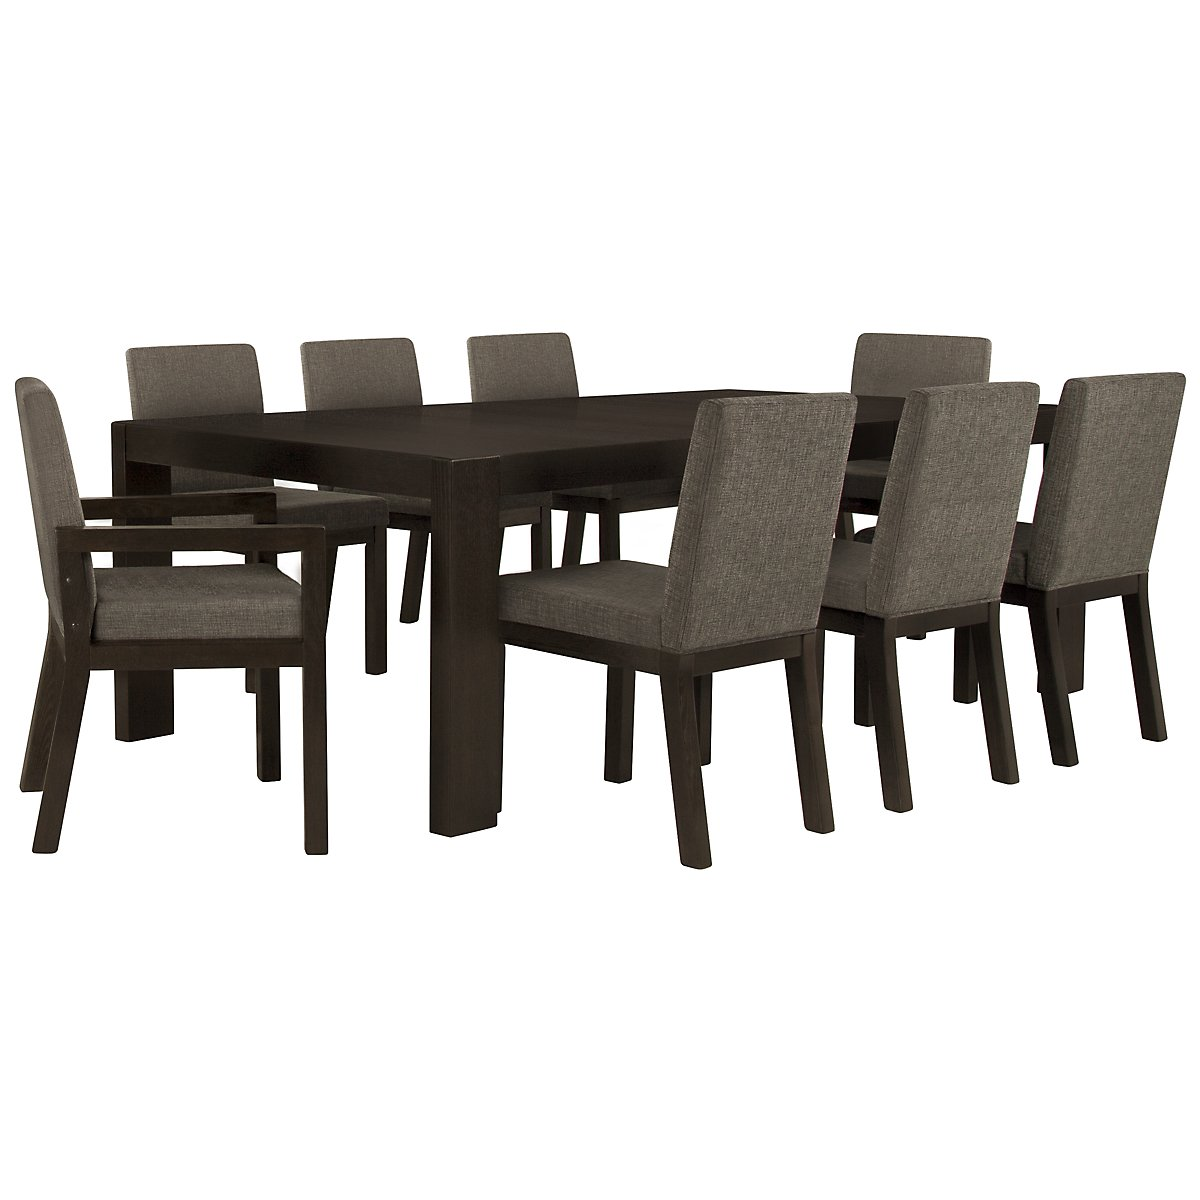 Tocara Dark Tone Table & 4 Upholstered Chairs